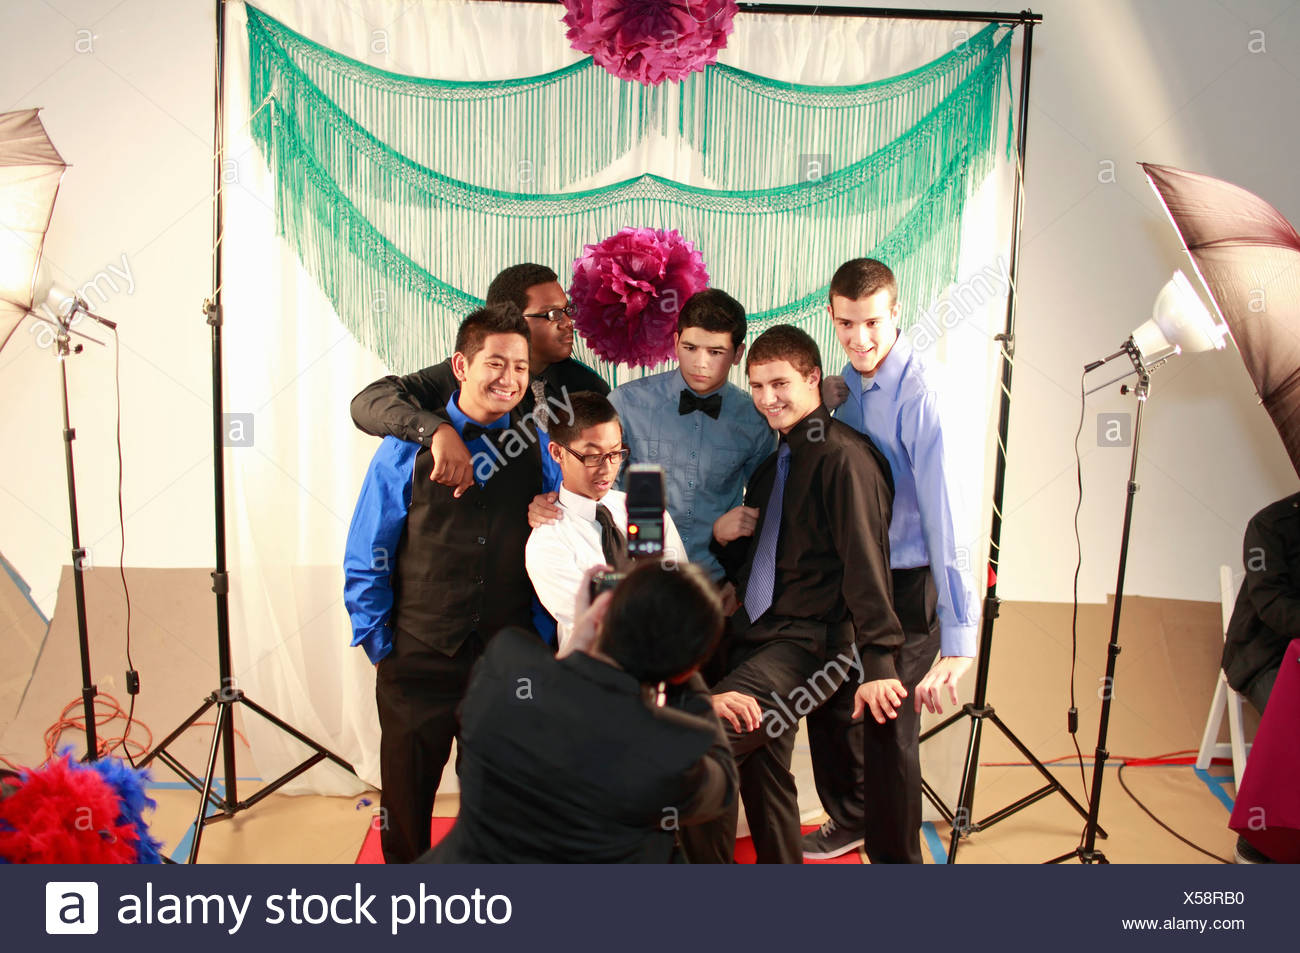 Teenagers posing for portrait at party - Stock Image